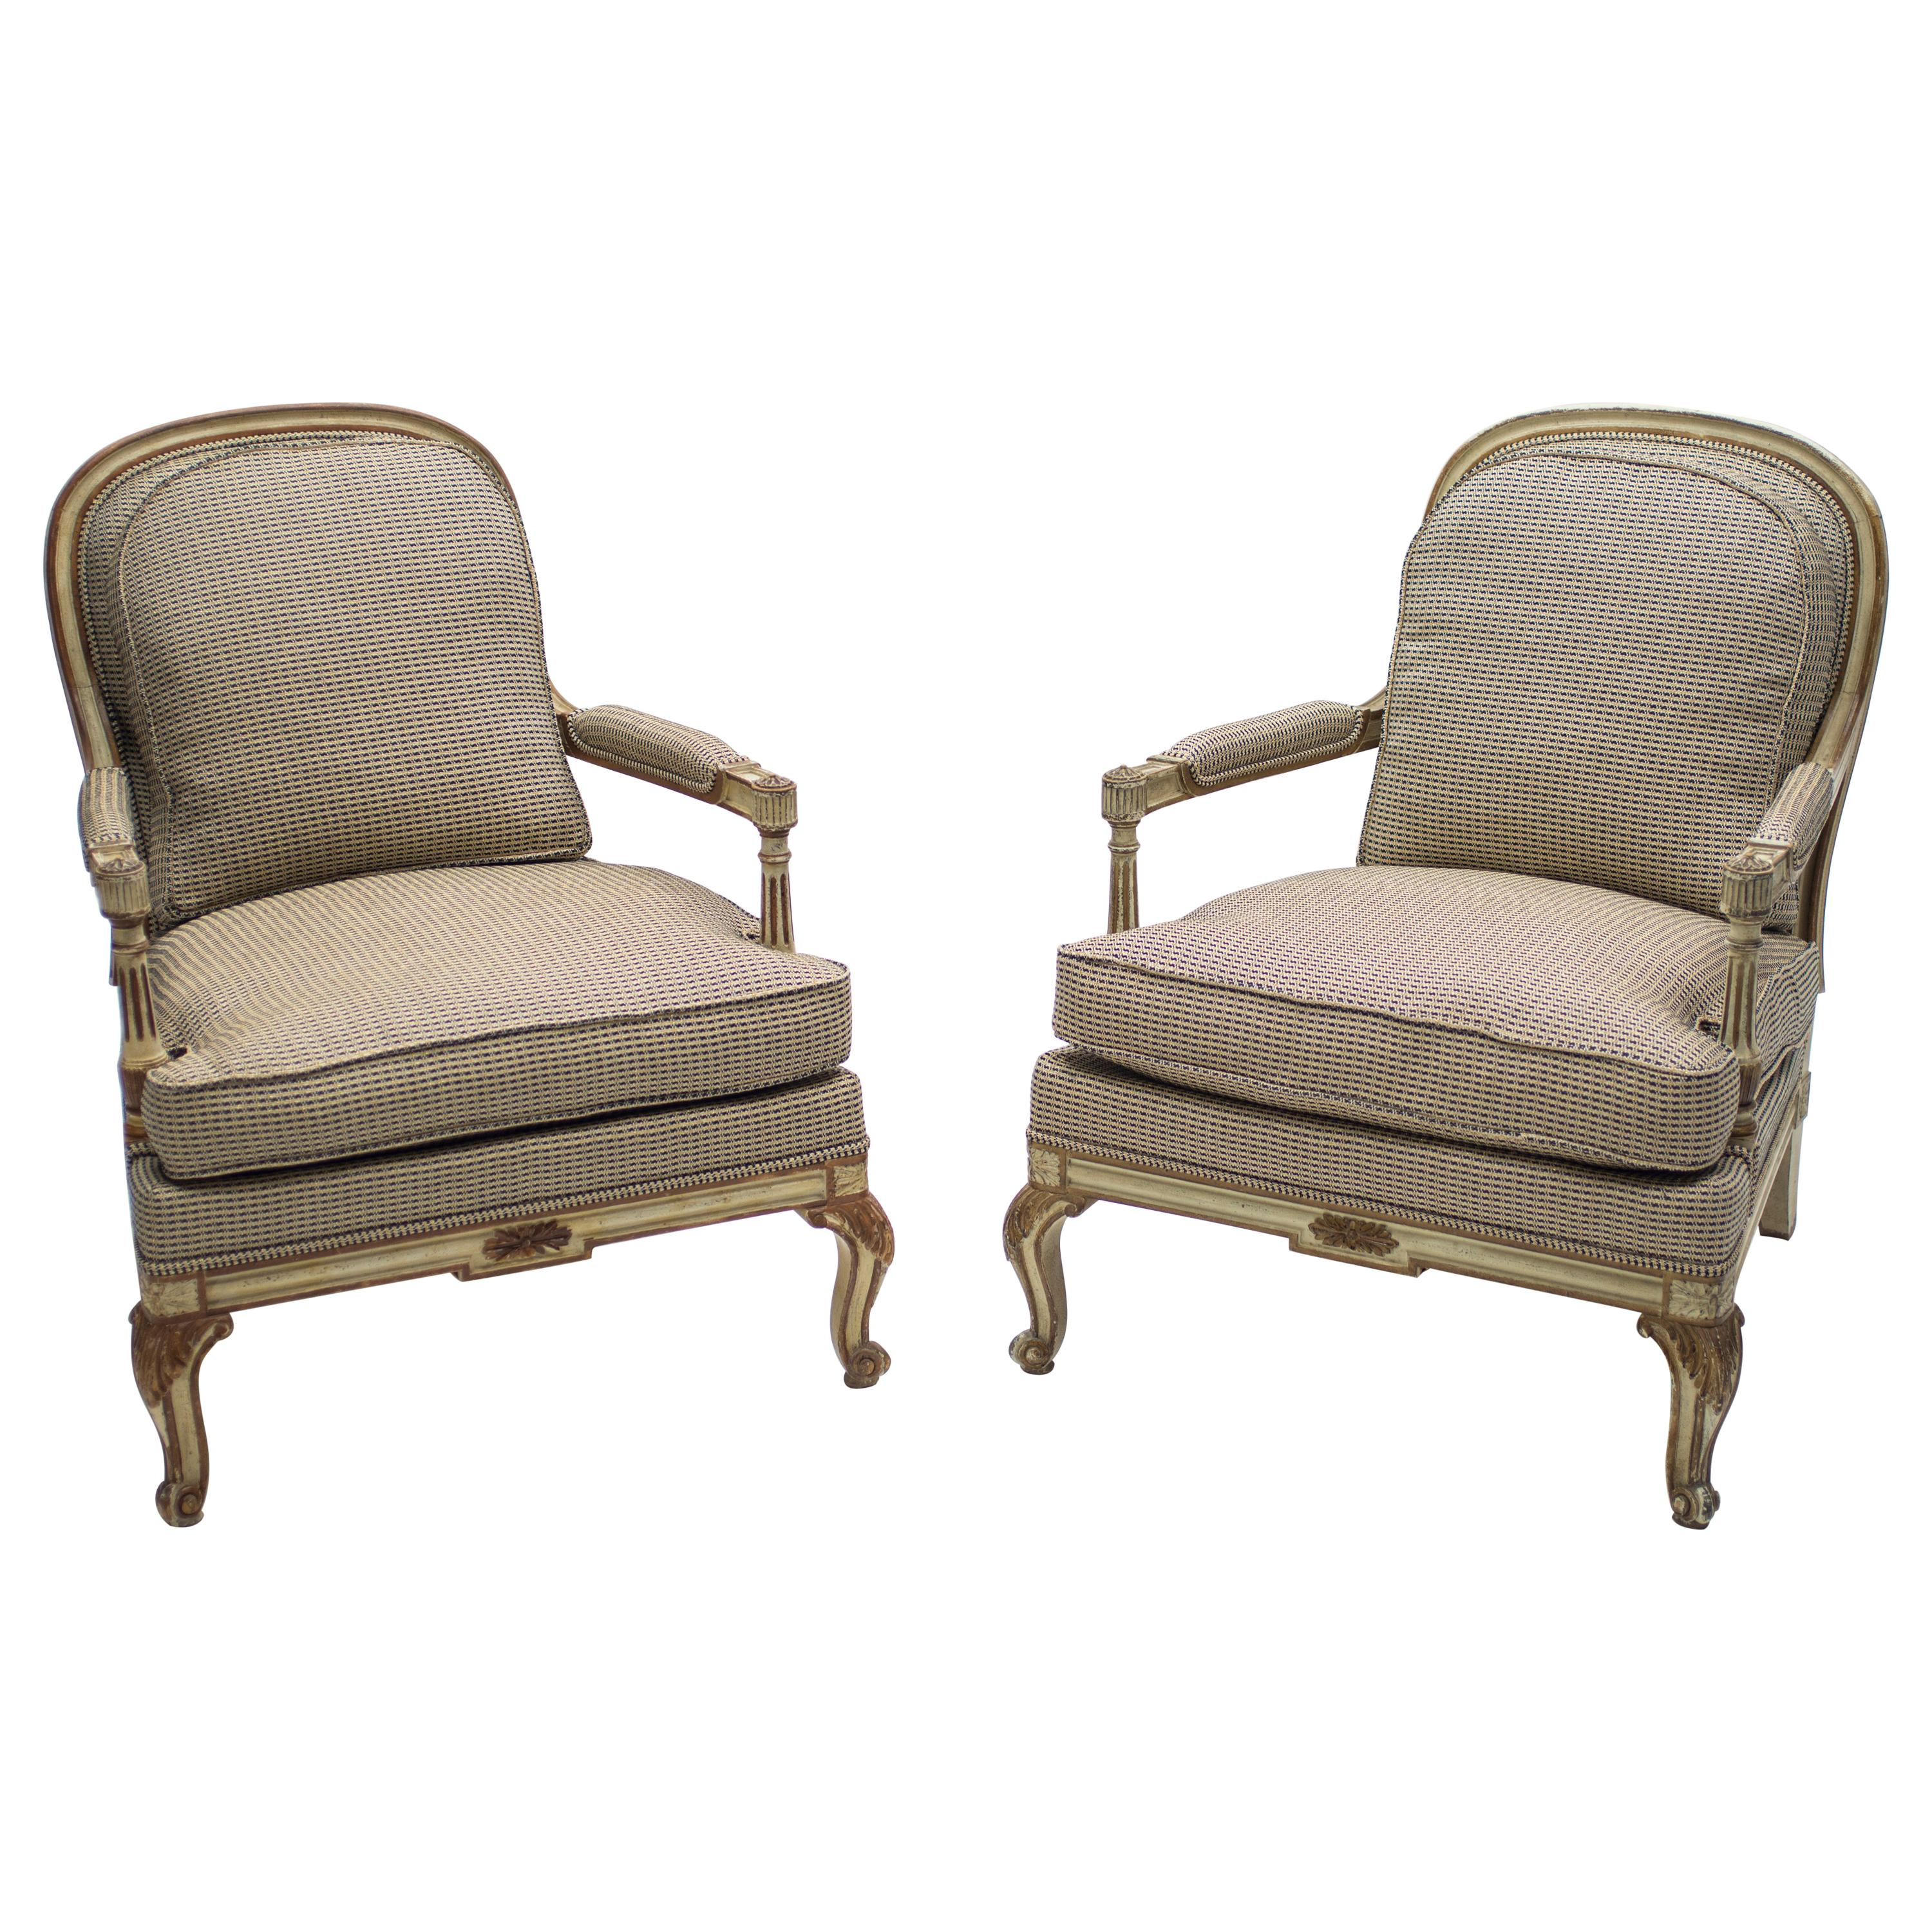 Rare Neoclassical Pair of Armchairs Signed by Maurice Hirsch, 1970s